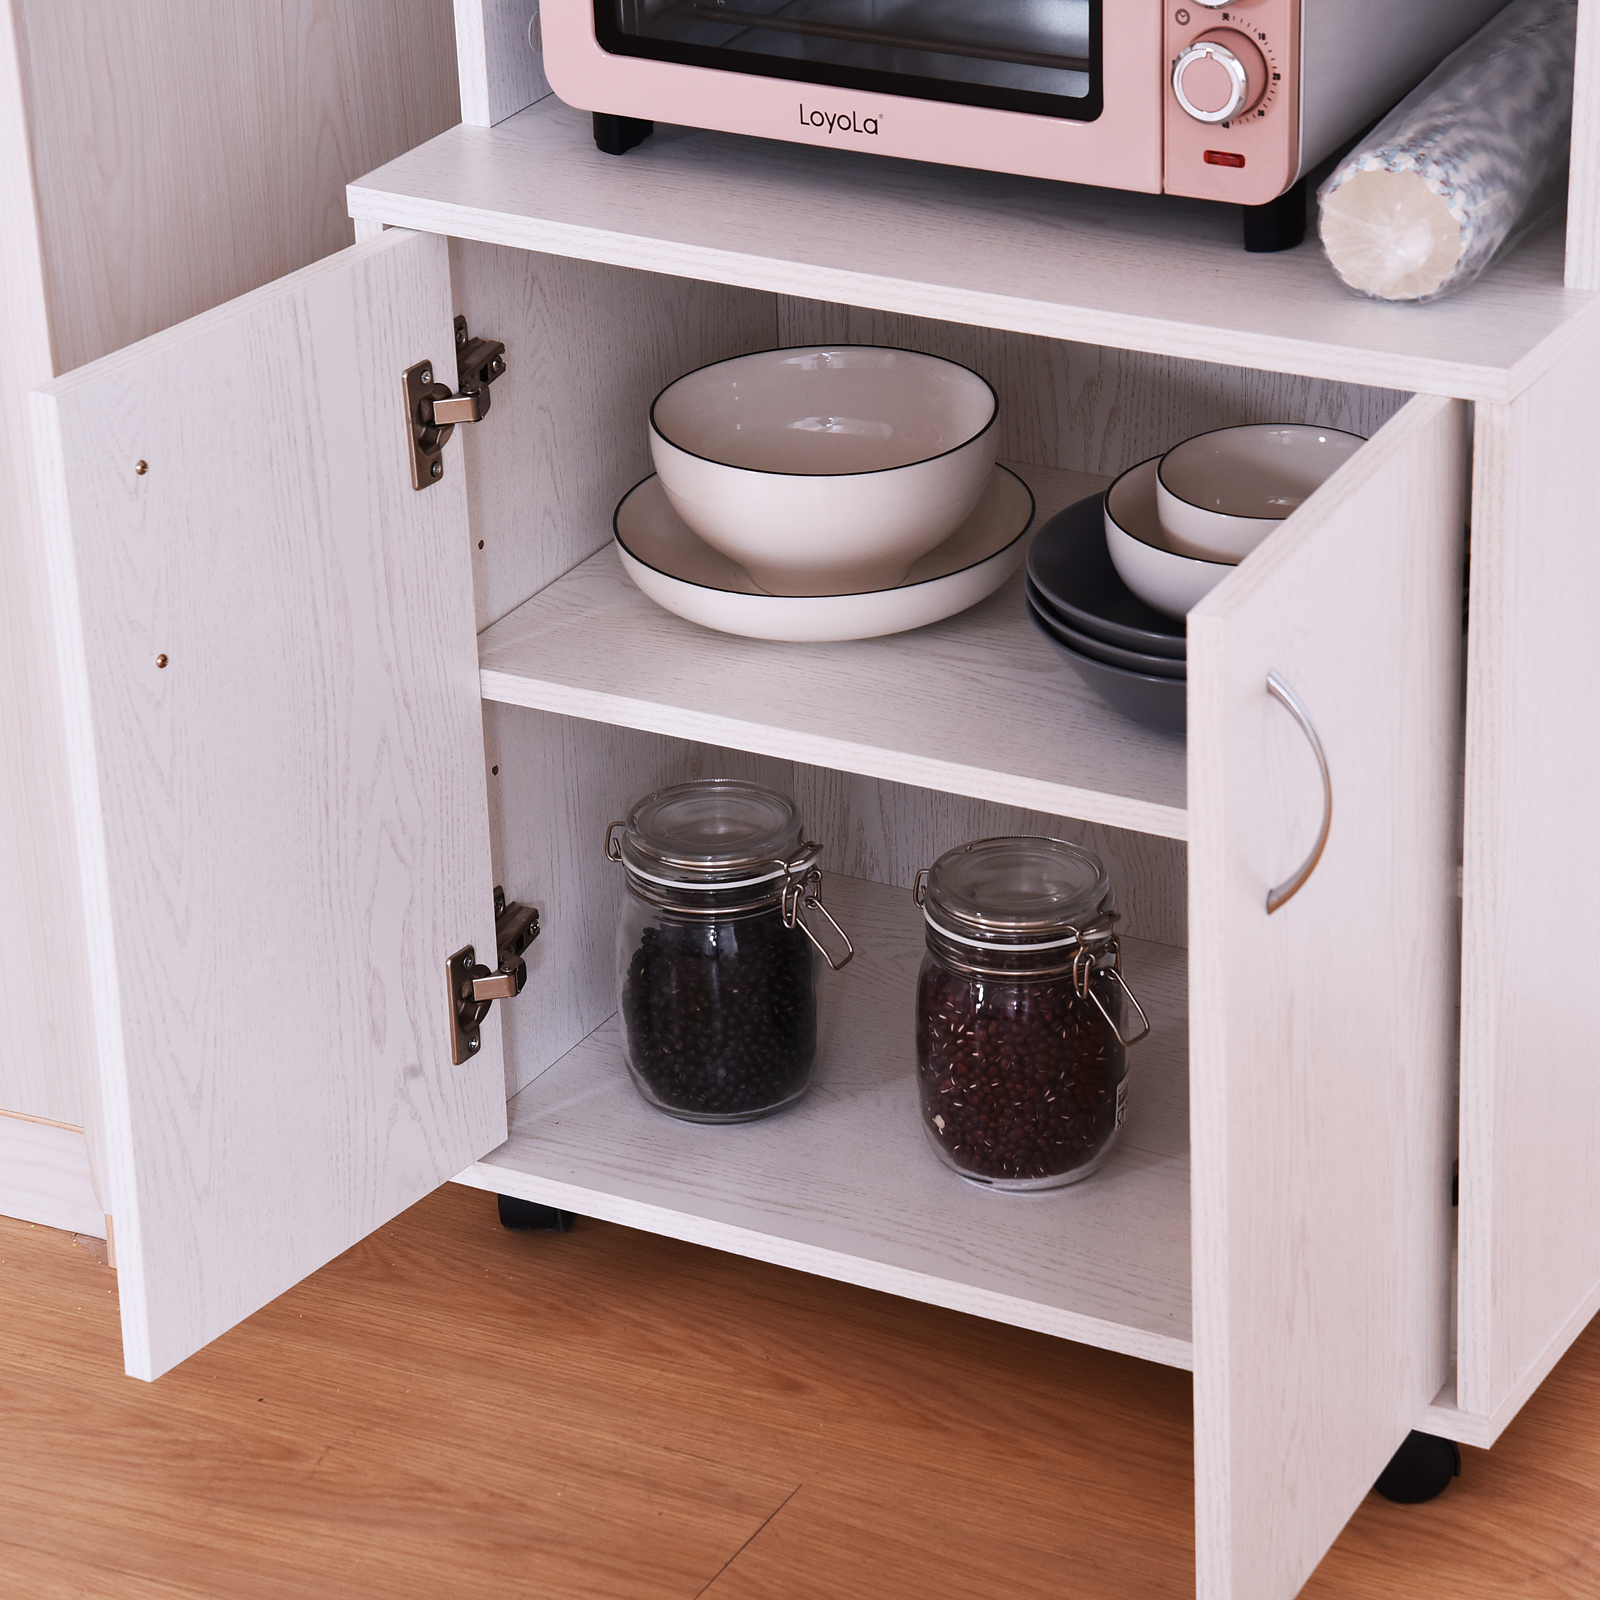 Tremendous Details About Rolling Kitchen Trolley Microwave Cart 2 Door Cabinet Storage Shelves W Wheels Home Remodeling Inspirations Propsscottssportslandcom